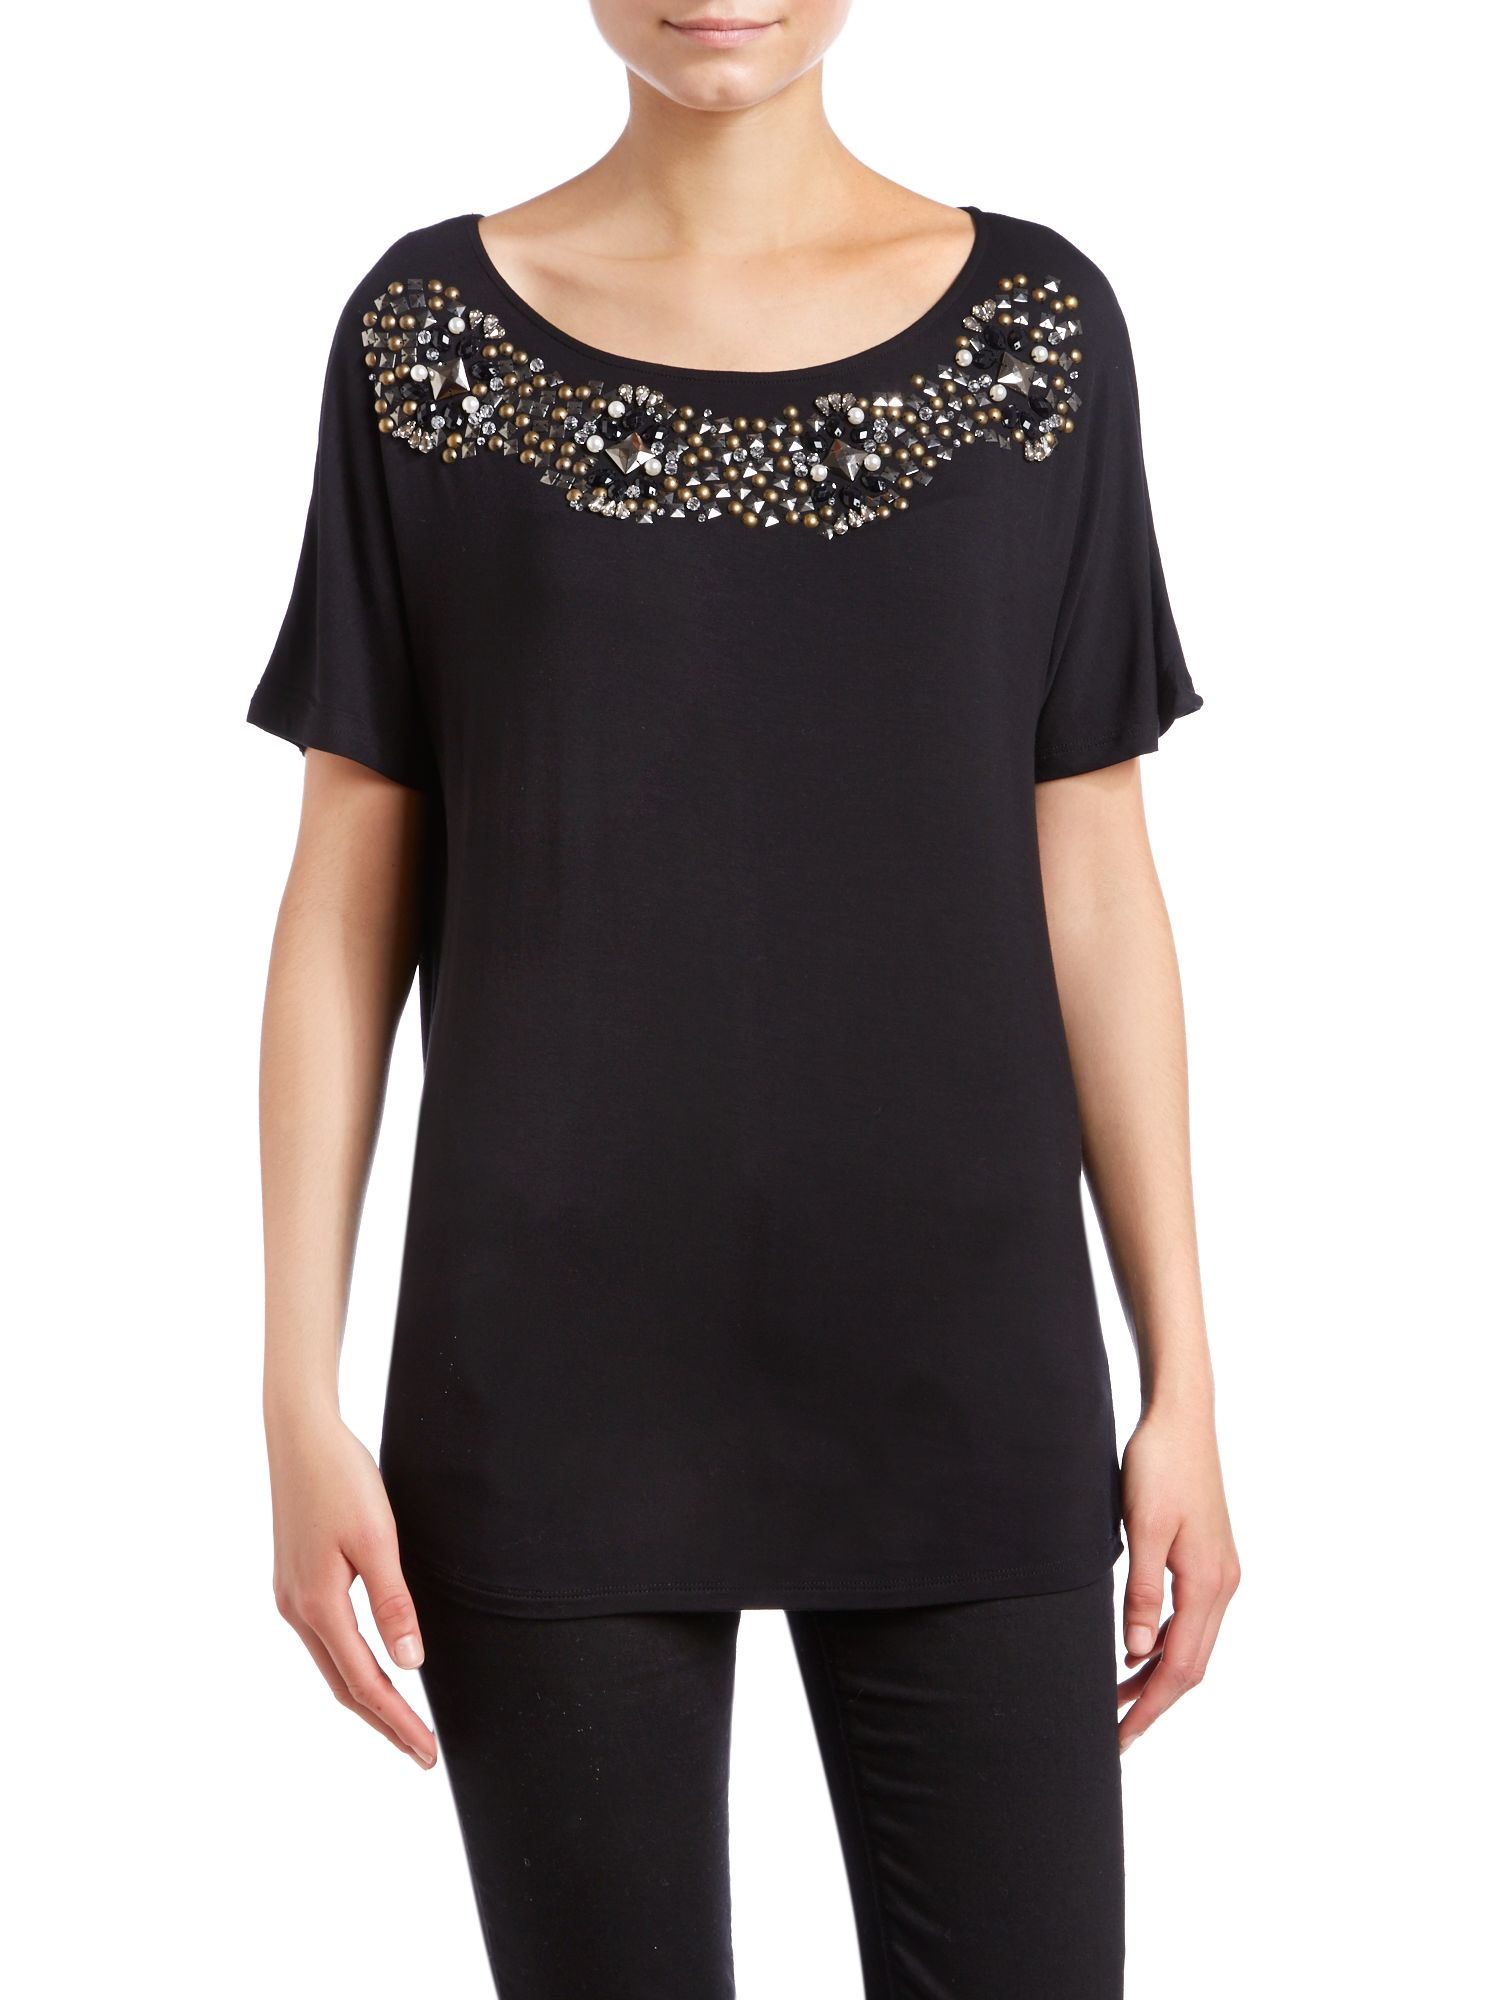 Short sleeve top with an embellished neckline